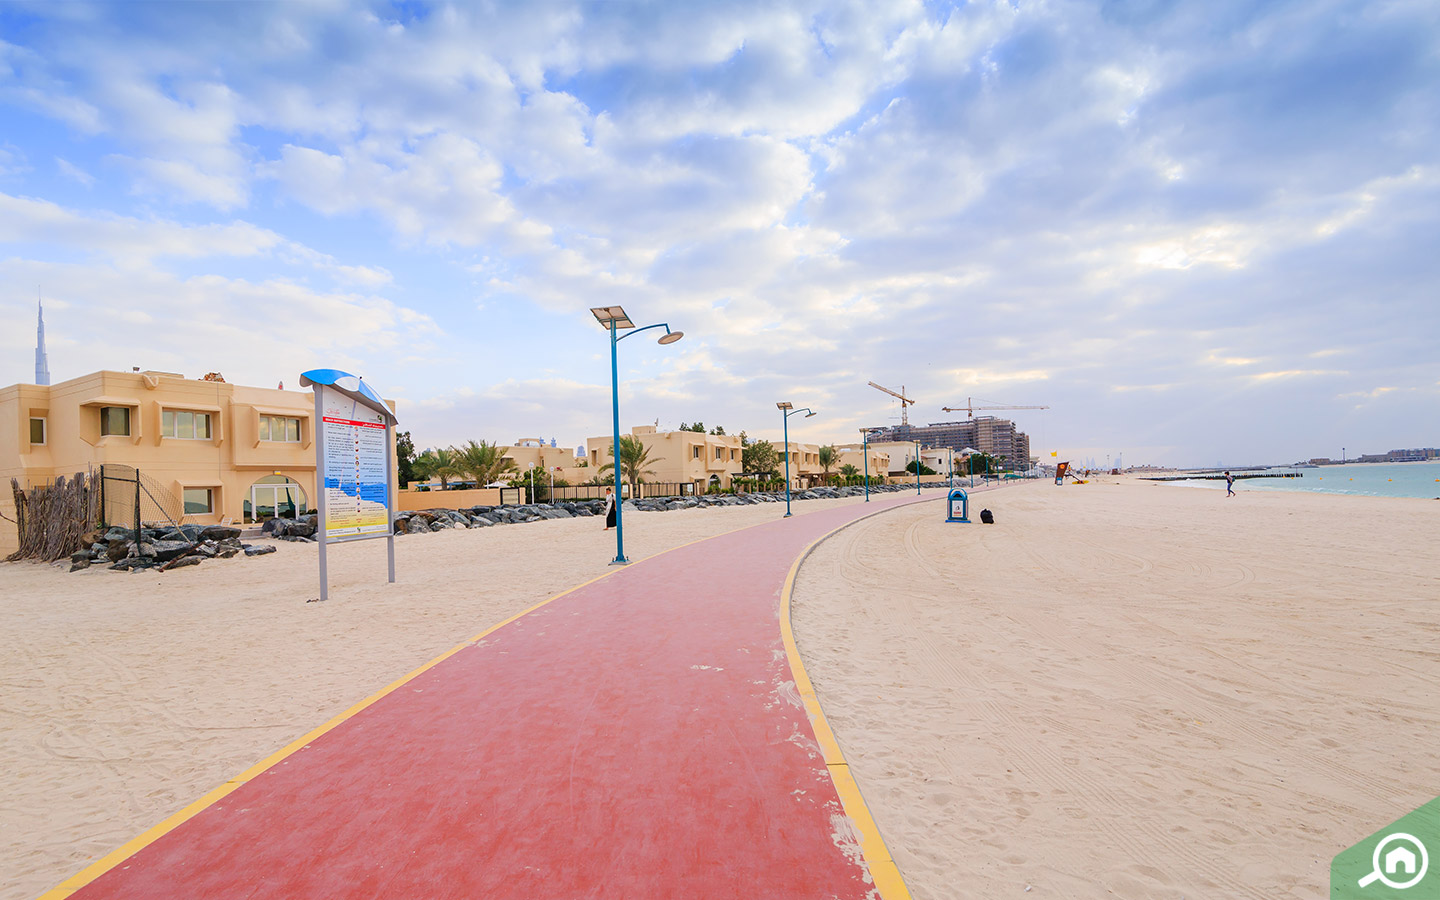 Jumeirah Beach is close to Liwan